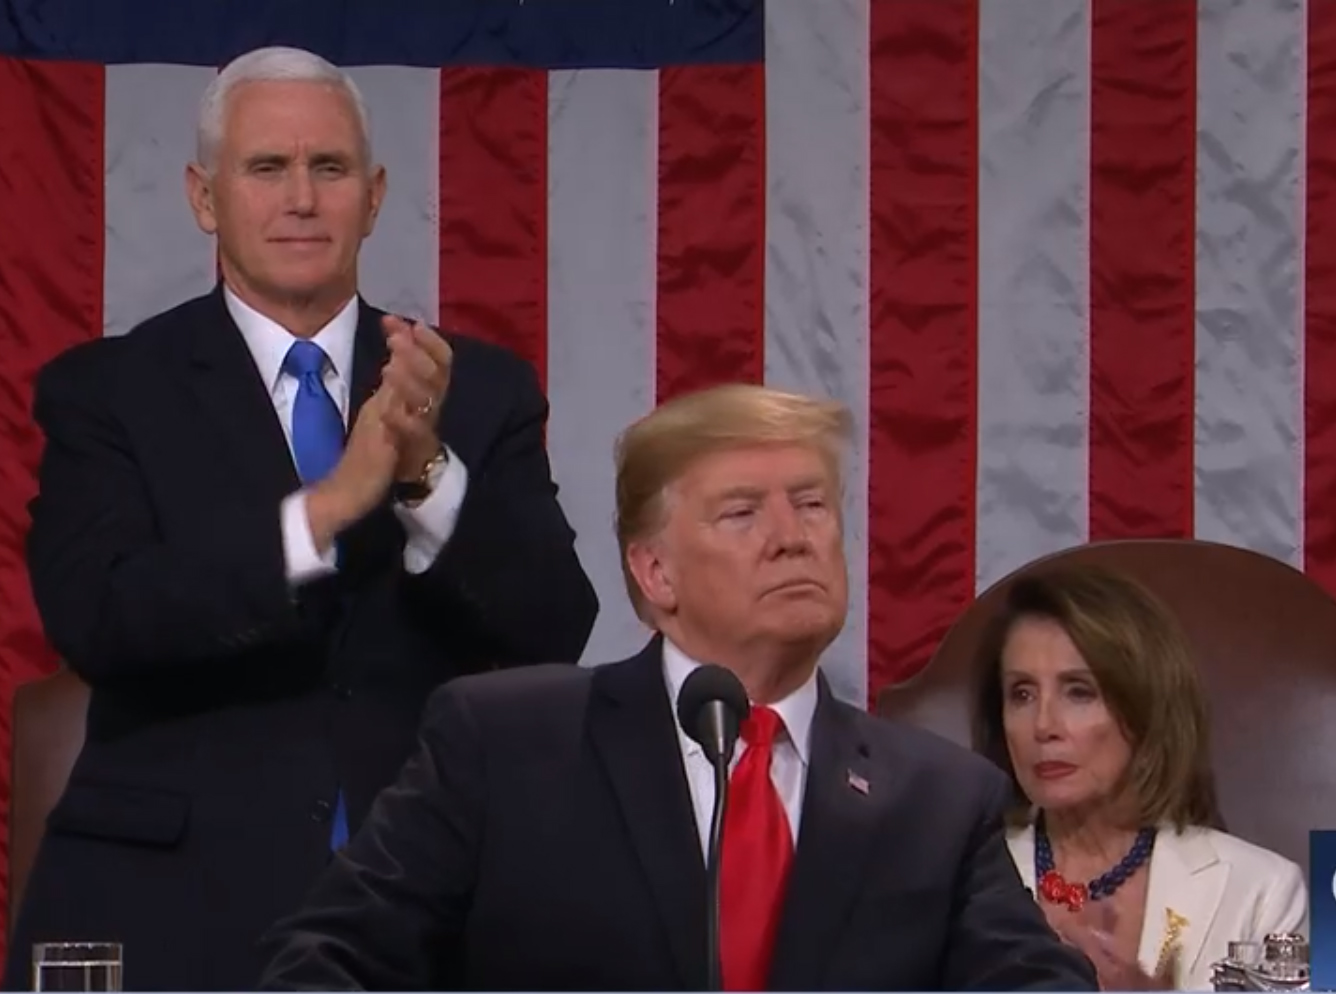 CT lawmakers bring guests to Trump's SOTU to send a message